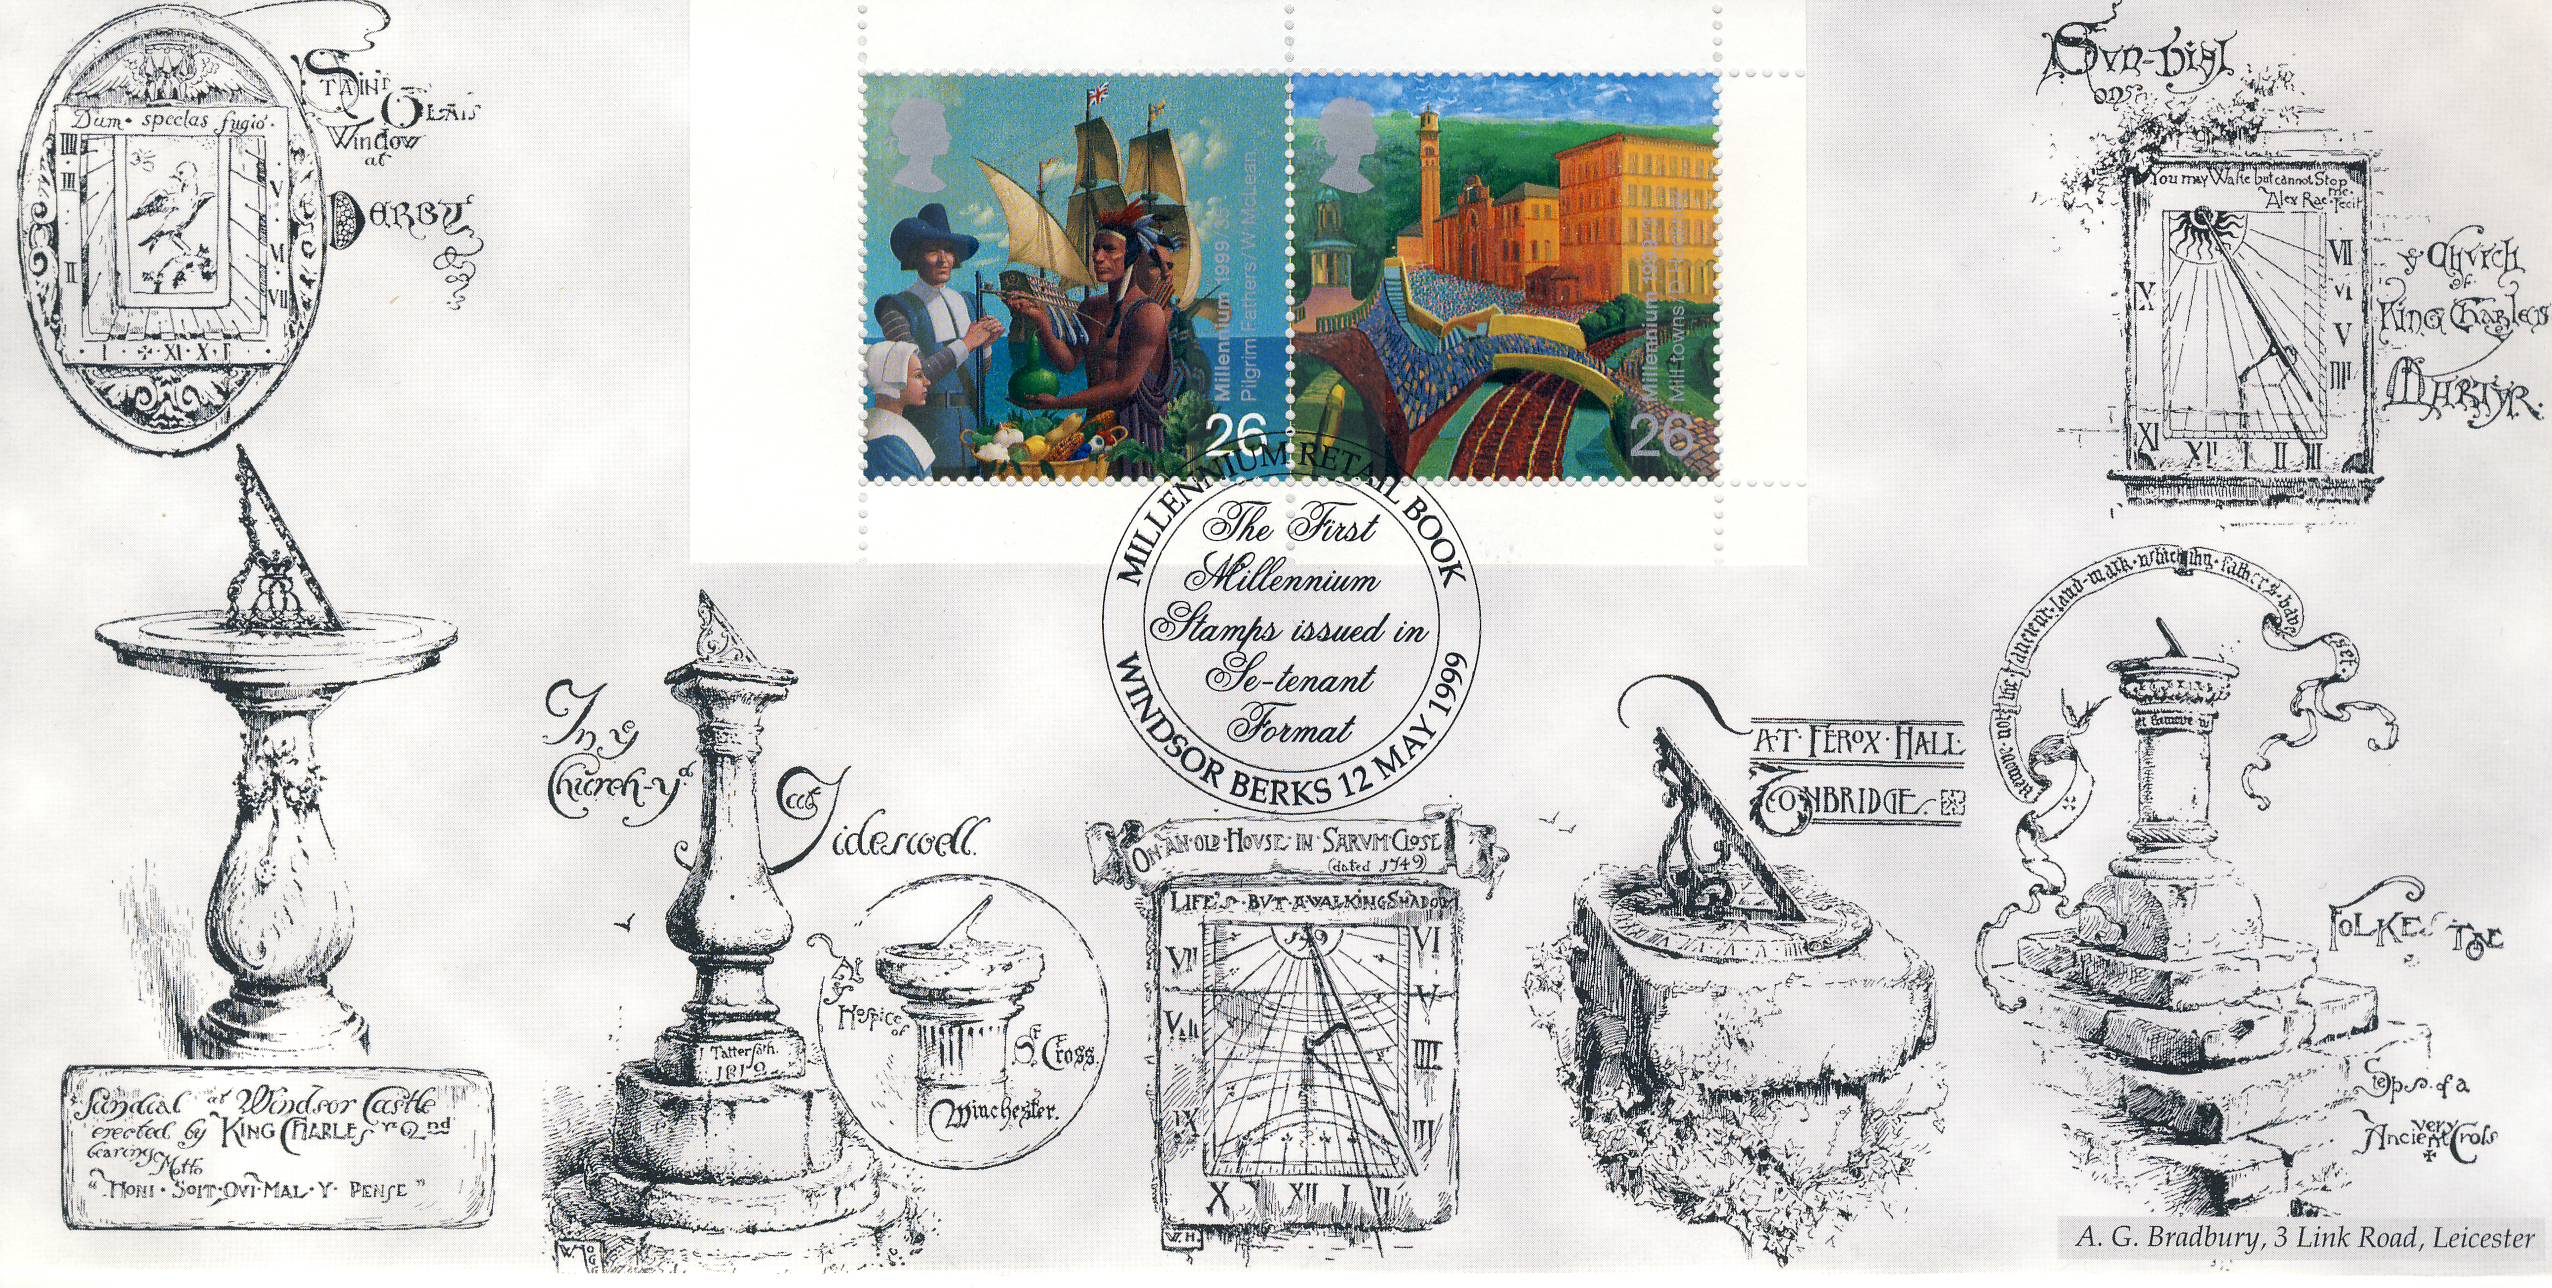 Millennium Retail Book Windsor Berks 12 May 1999 Limited Edition cover FDC This is a Bradbury limited edition stamp cover numbered 315 of 500.  The first Millennium Stamps issued in Se-tenant Formast. Very good condition.